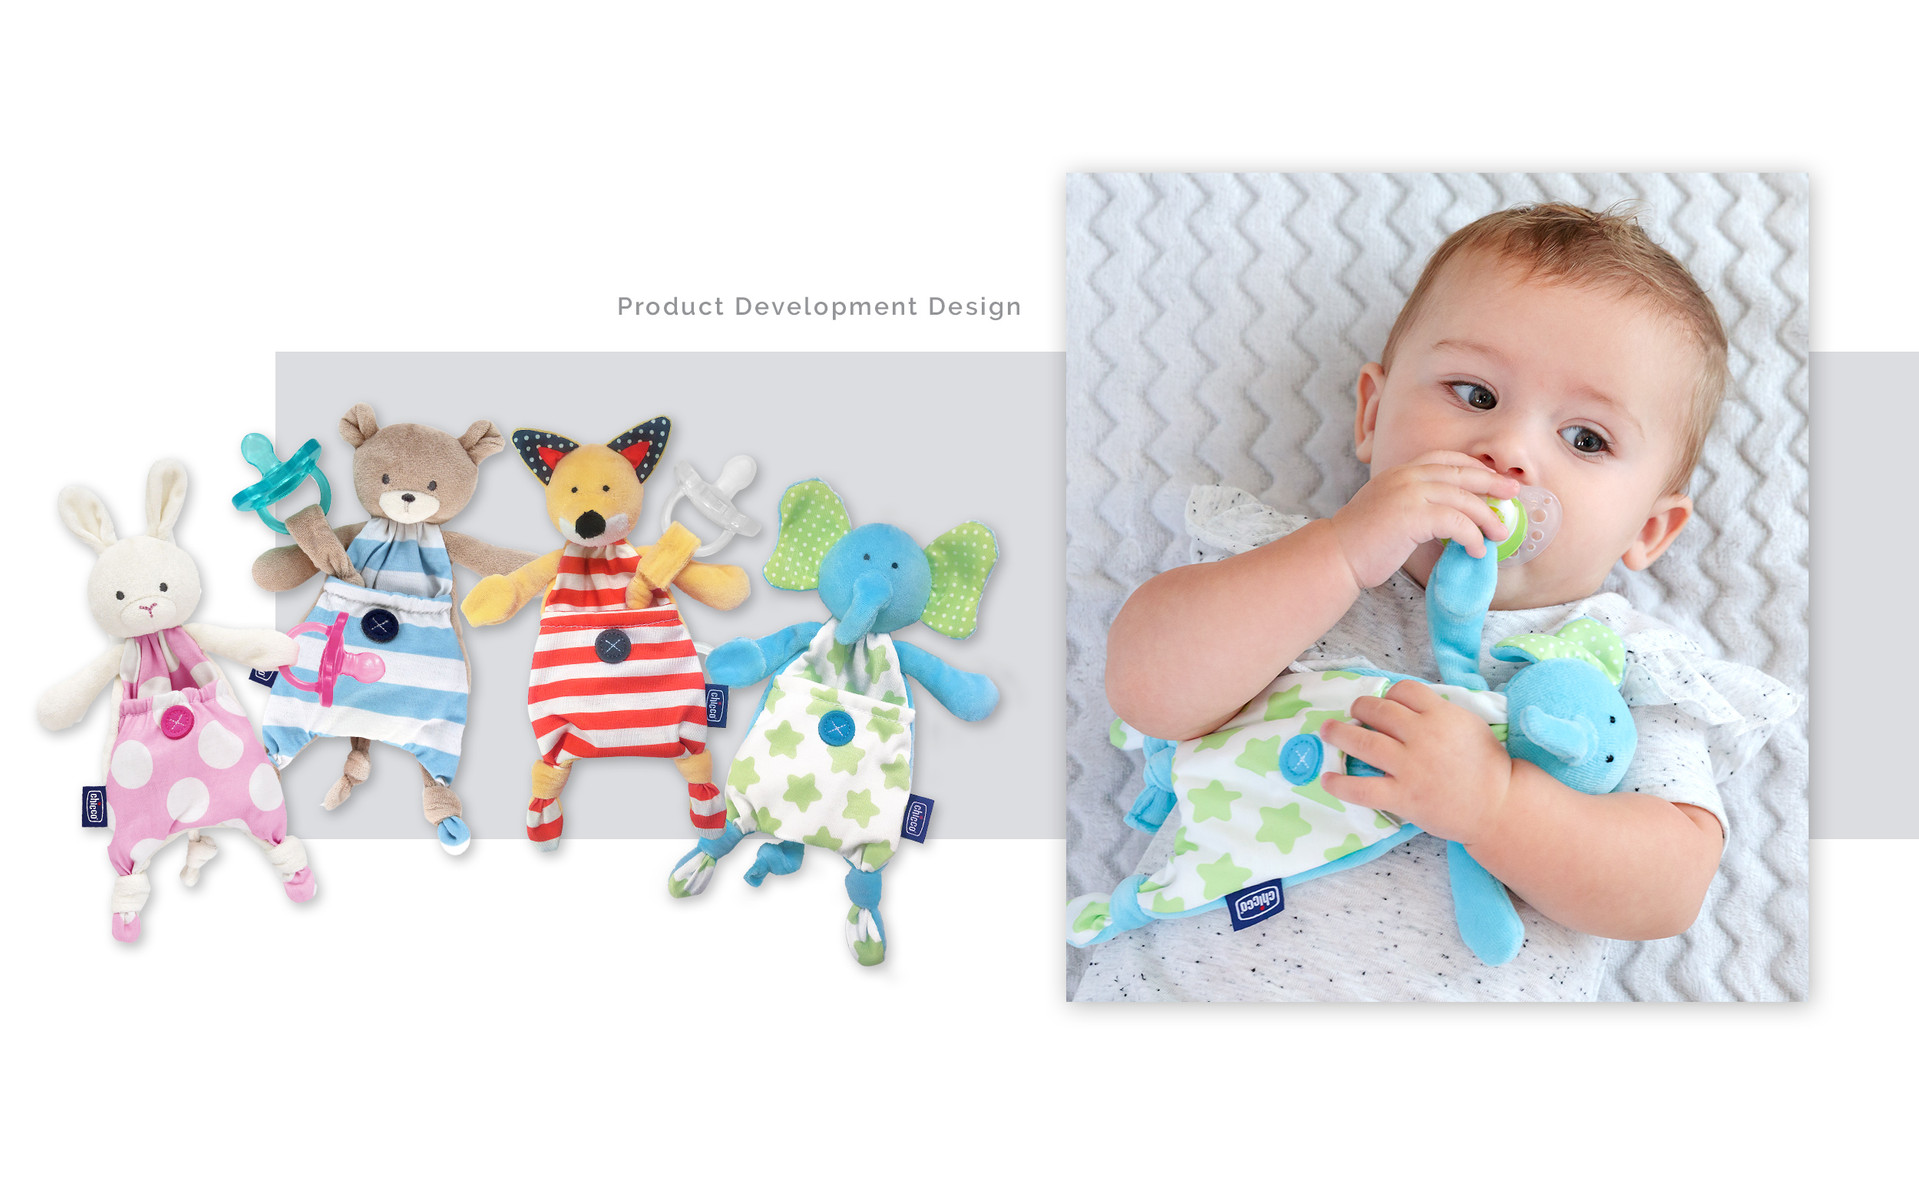 Chicco pocket buddy product design